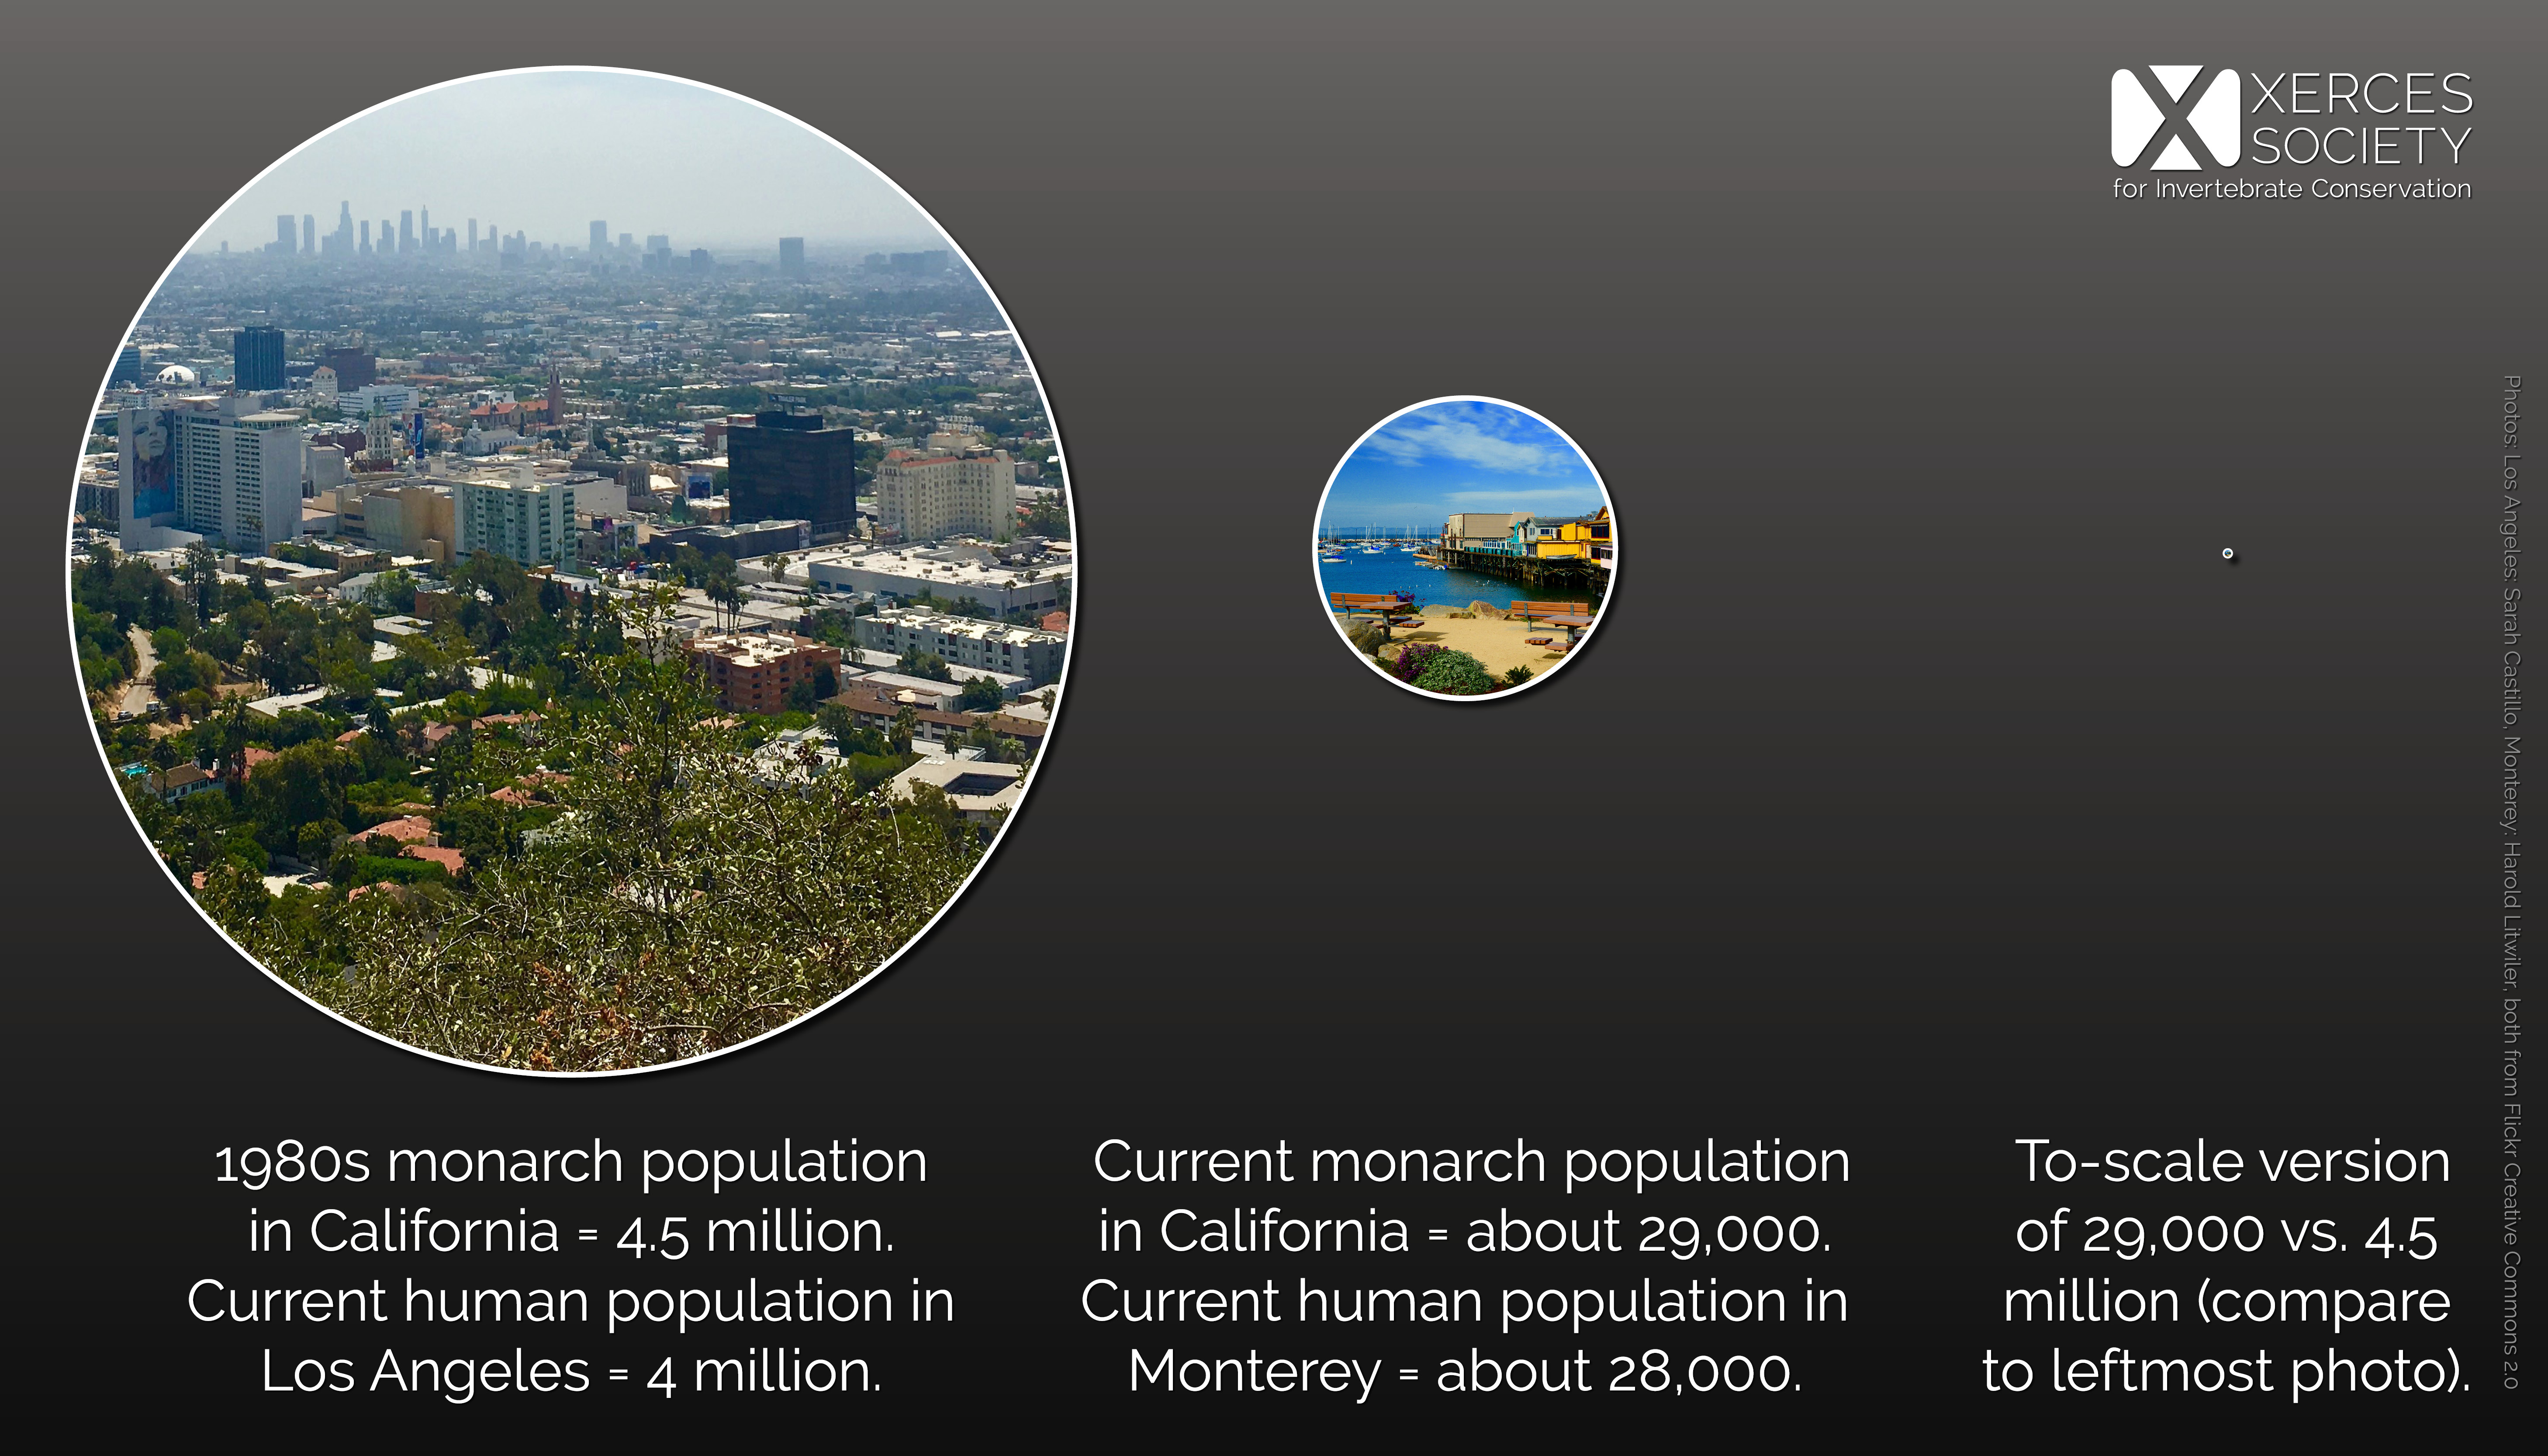 This infographic shows three circles, getting smaller as they progress from the left to the right. The leftmost circle contains an aerial photo of Los Angeles. The center circle, which is approximately half the size of the first, contains a photo of the Monterey waterfront. The rightmost circle is essentially a speck; it is 1/160th the size of the leftmost circle. This demonstrates the variation in population size from LA to Monterey, and draws the comparison between the size of the western monarch population in the 1980s and its size today.